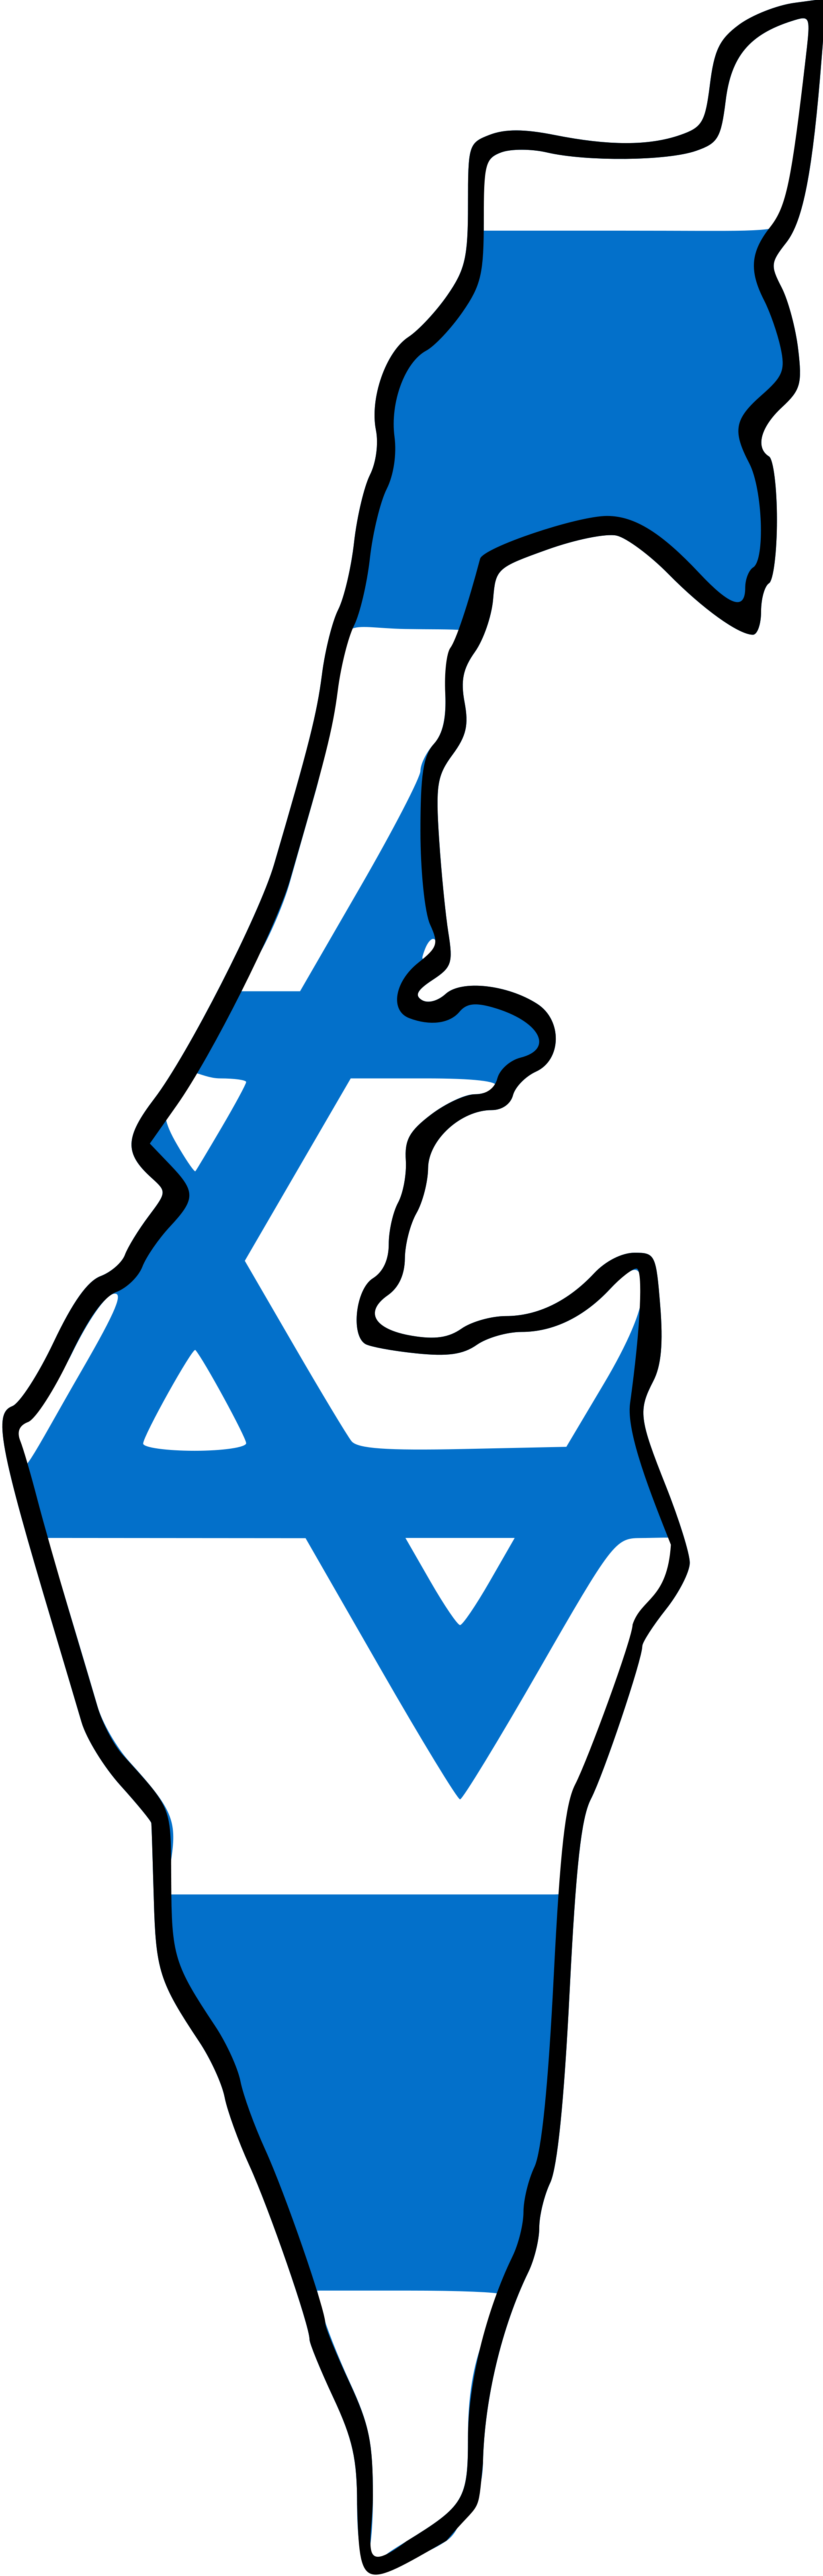 Mapflag Of Israel I Dont Think Itll Be Too Controversial - Japan map flag